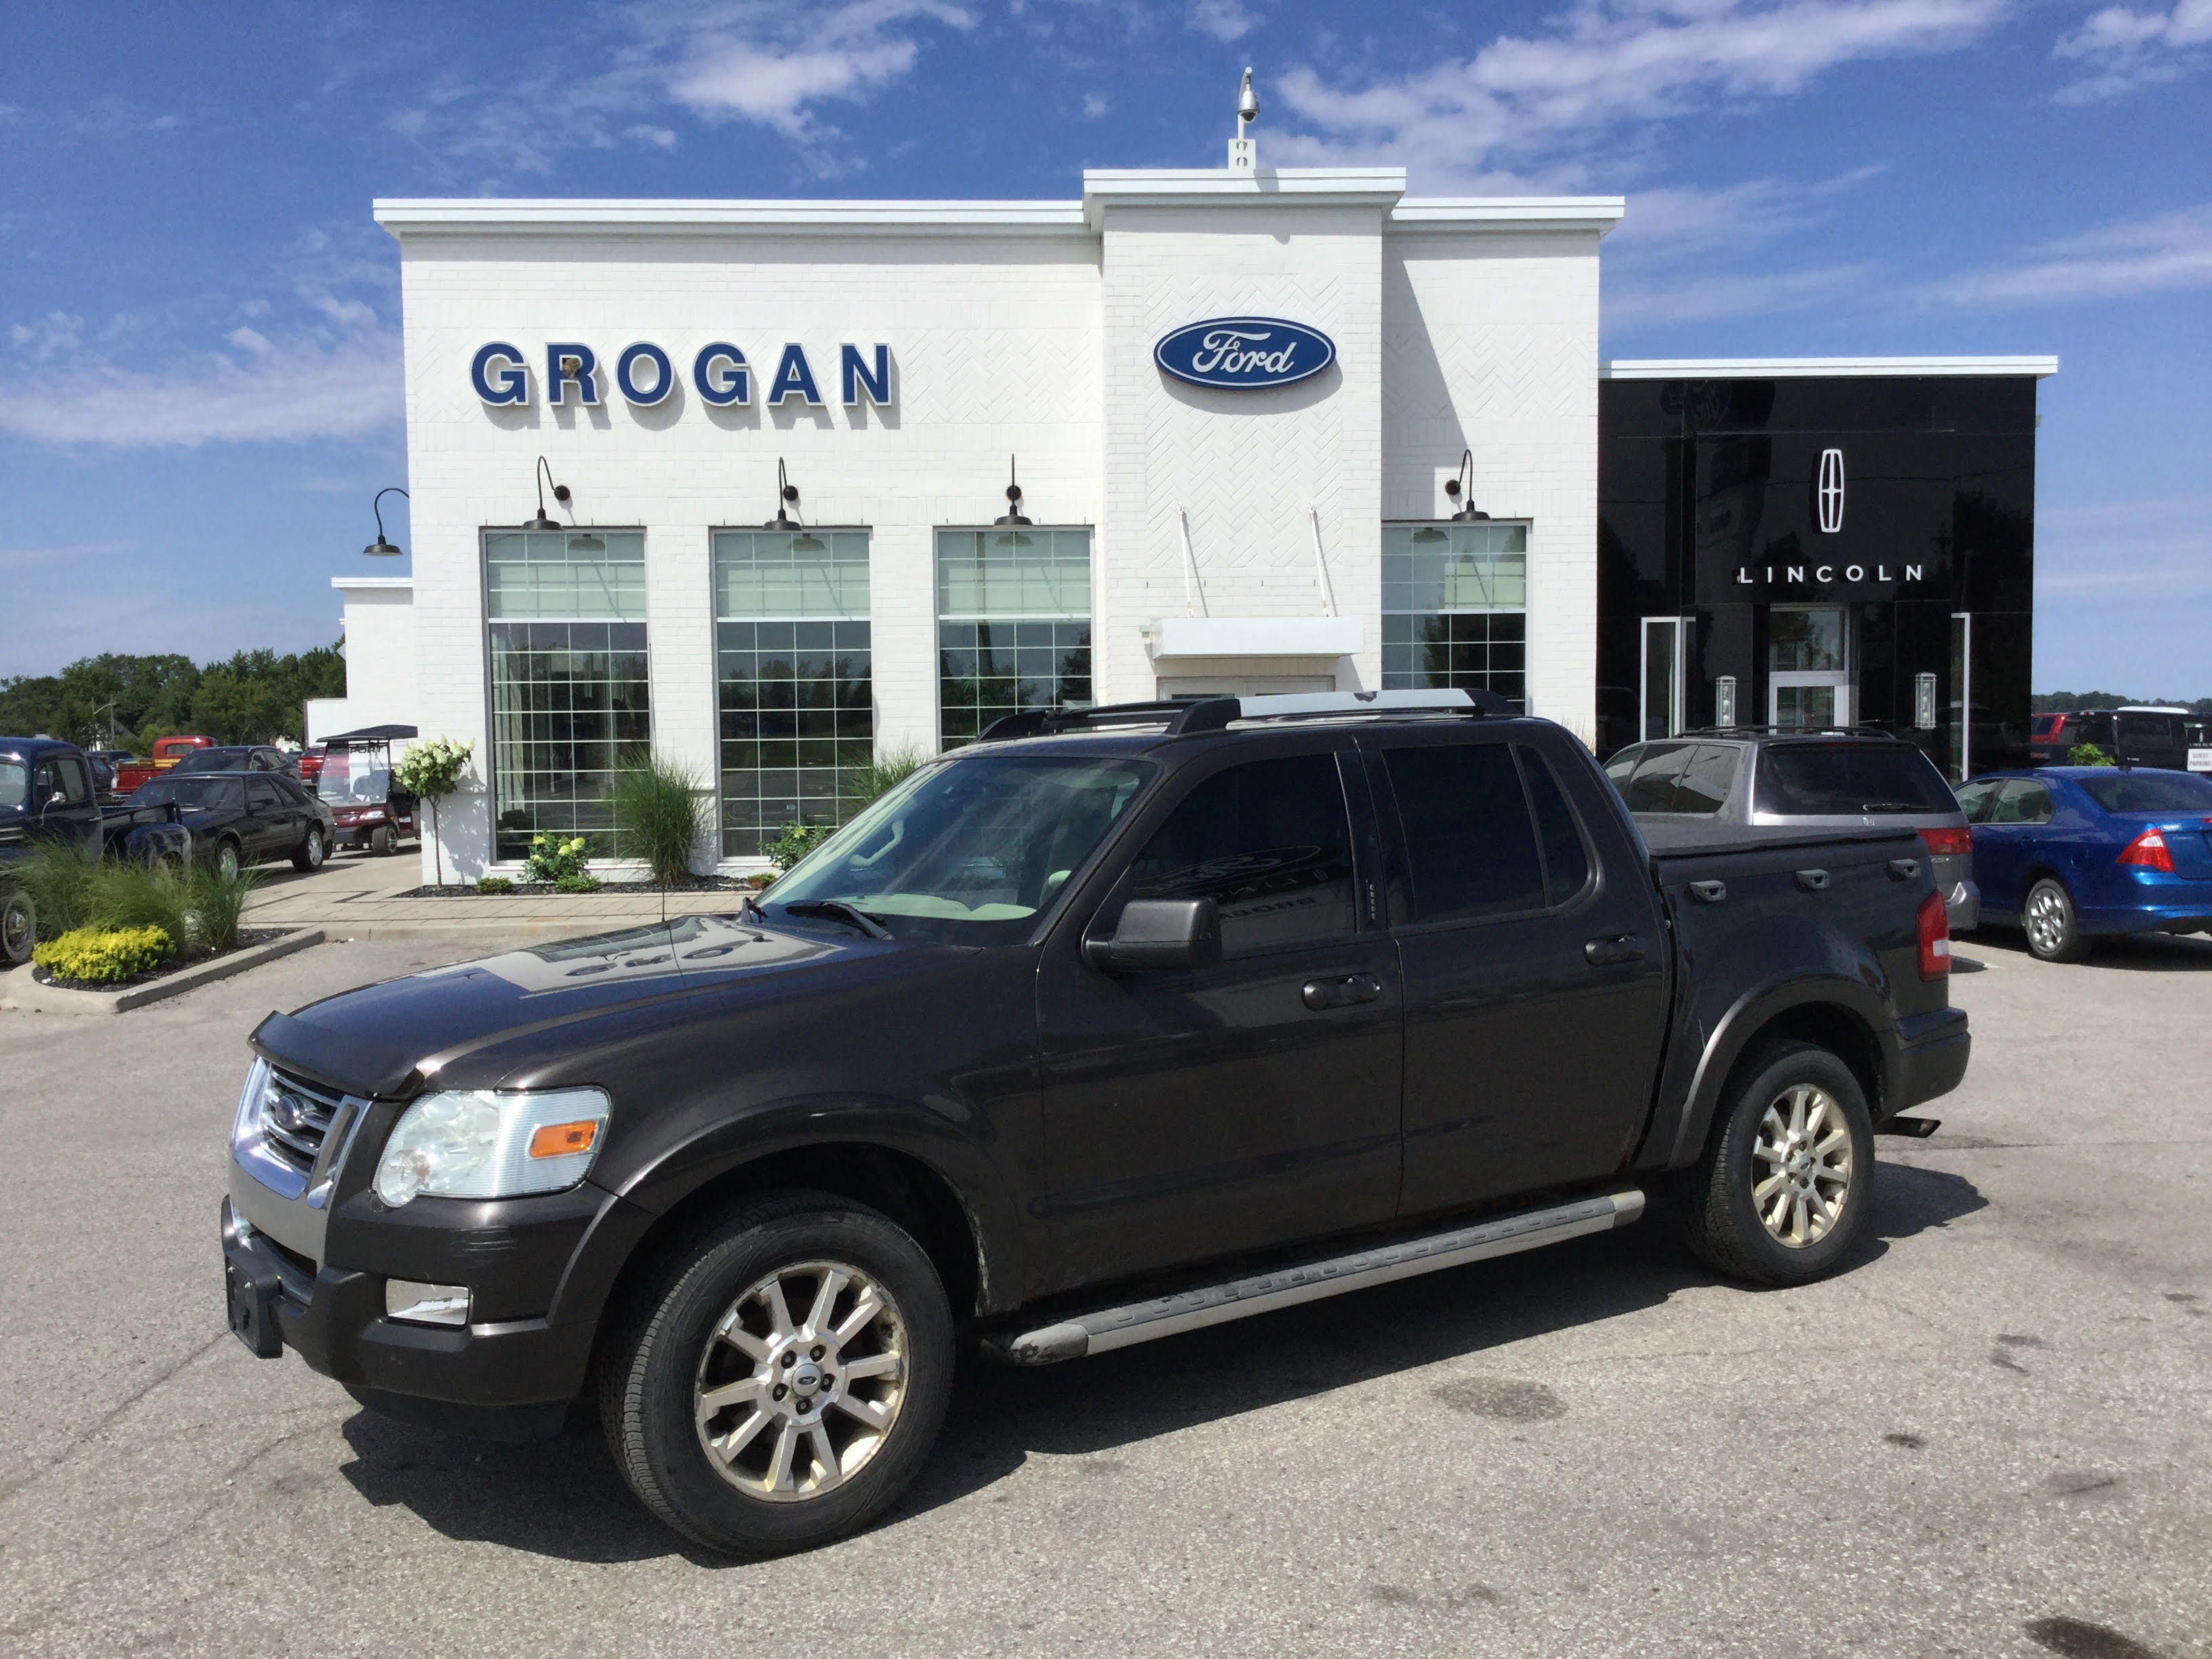 Wholesale Cars, Trucks & SUVs for Sale in | Grogan Ford Lincoln